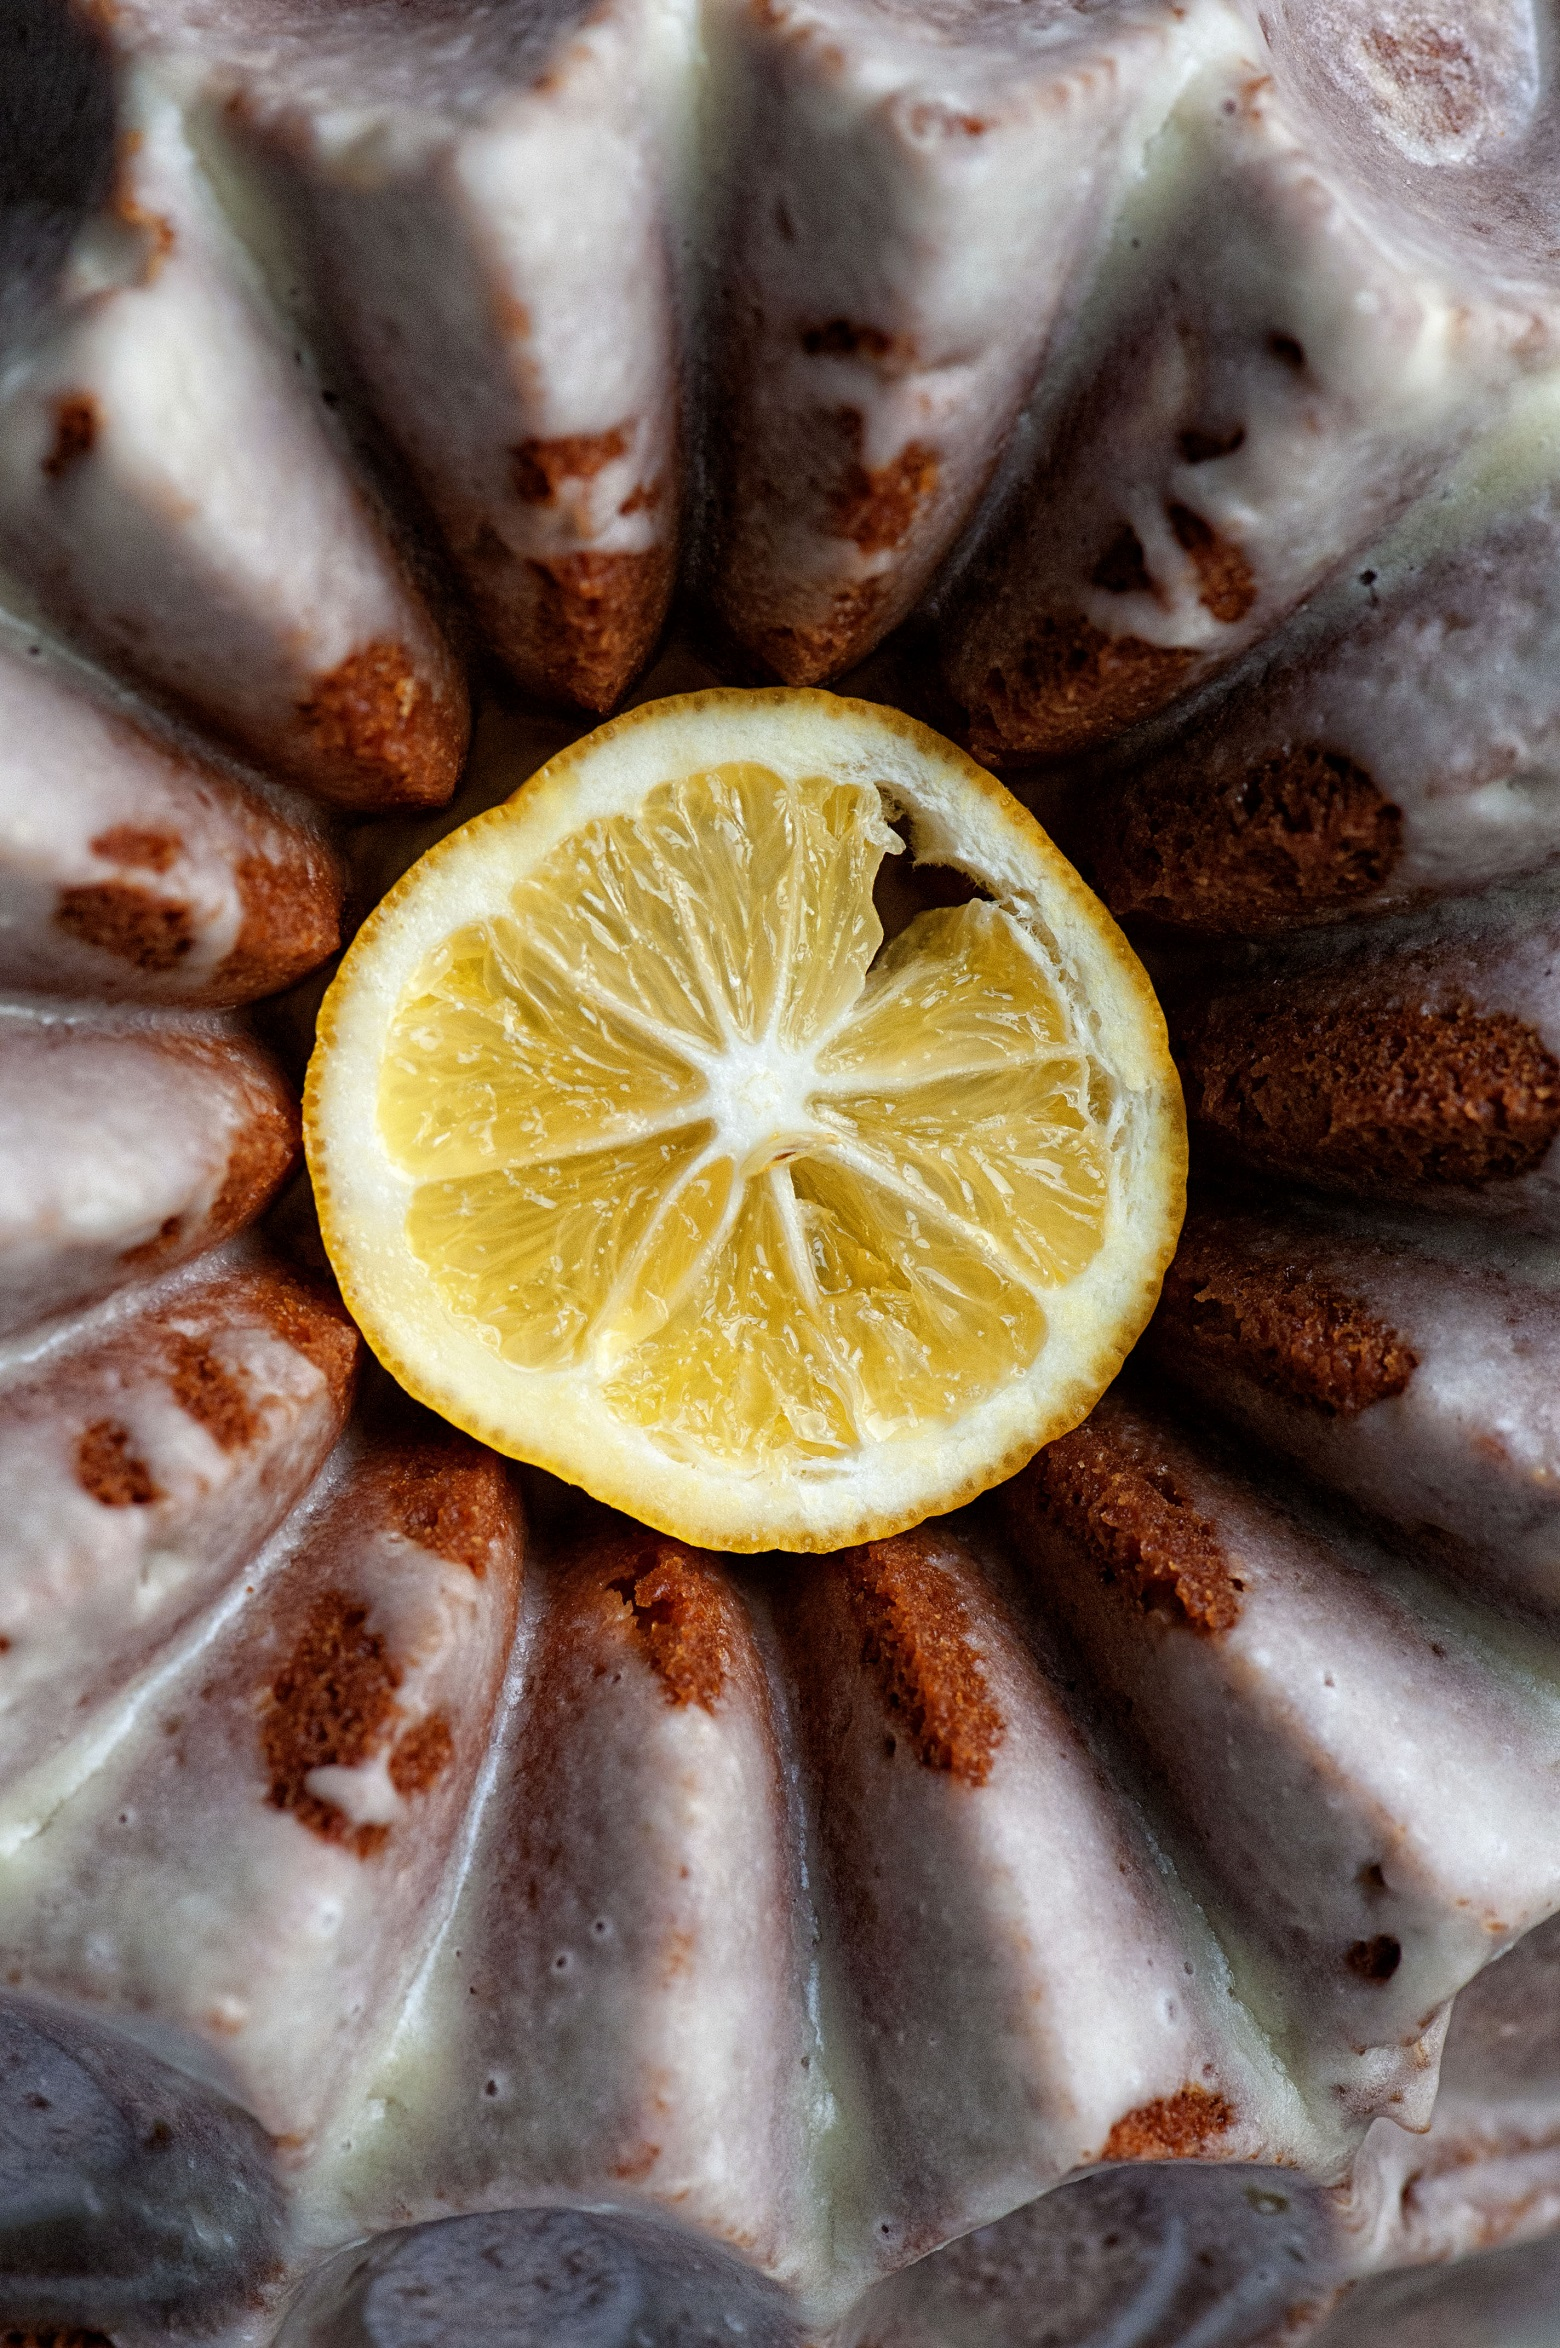 Lemon Glaze For Pound Cake With Lemon Extract